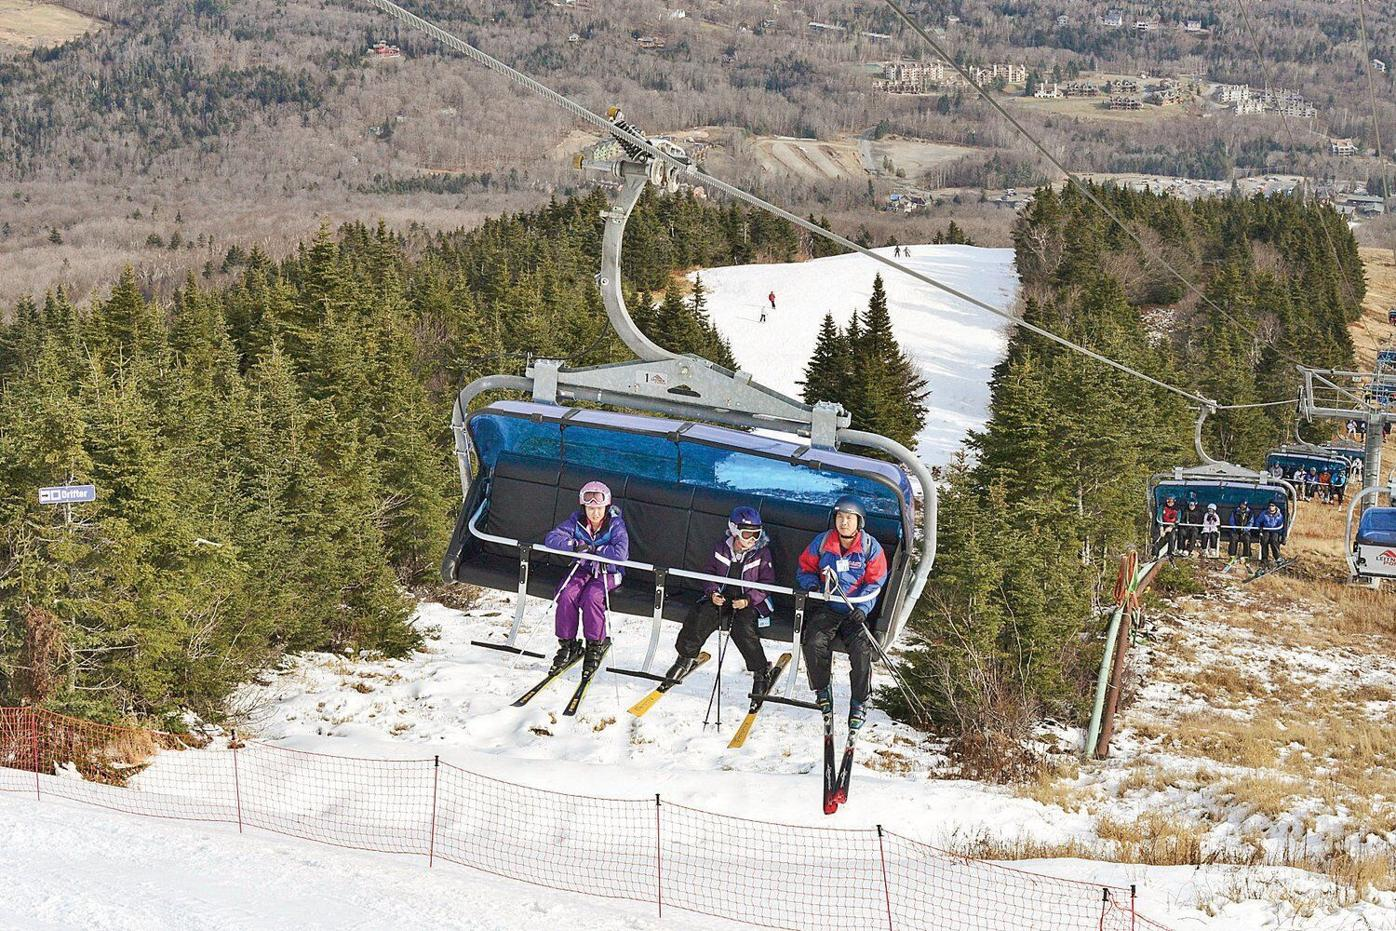 Proposal would provide COVID funds to ski areas